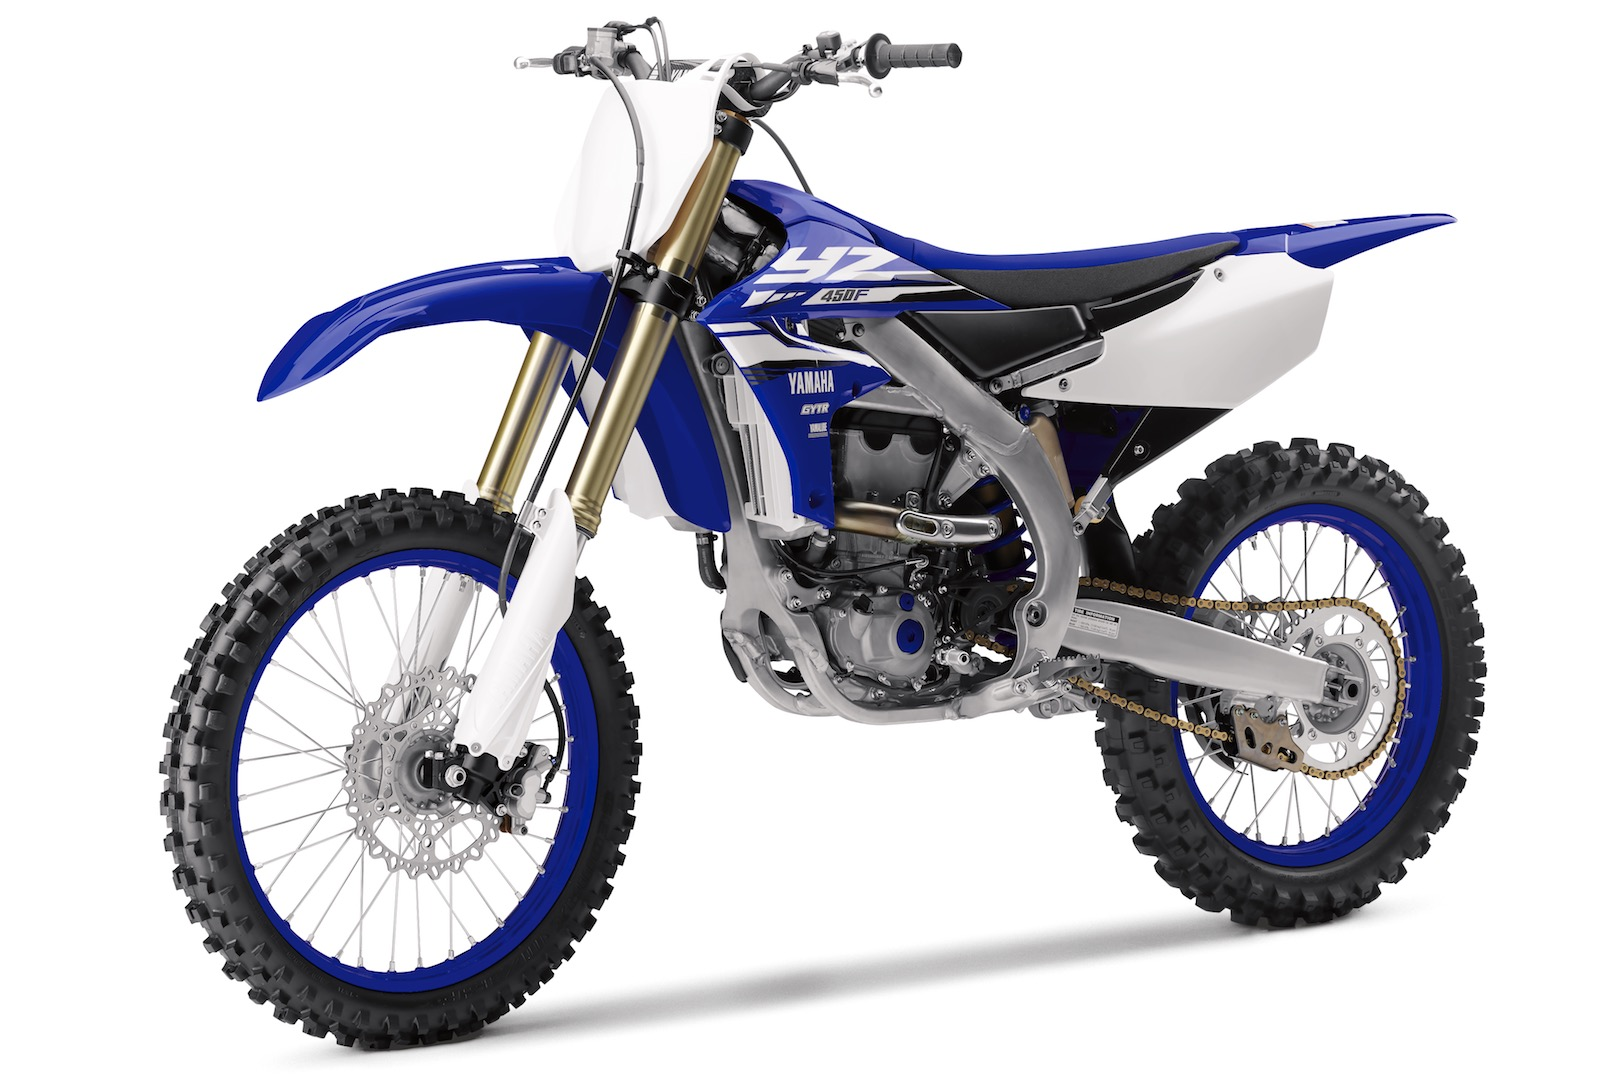 2018 Yamaha Yz450f First Look 14 Fast Facts